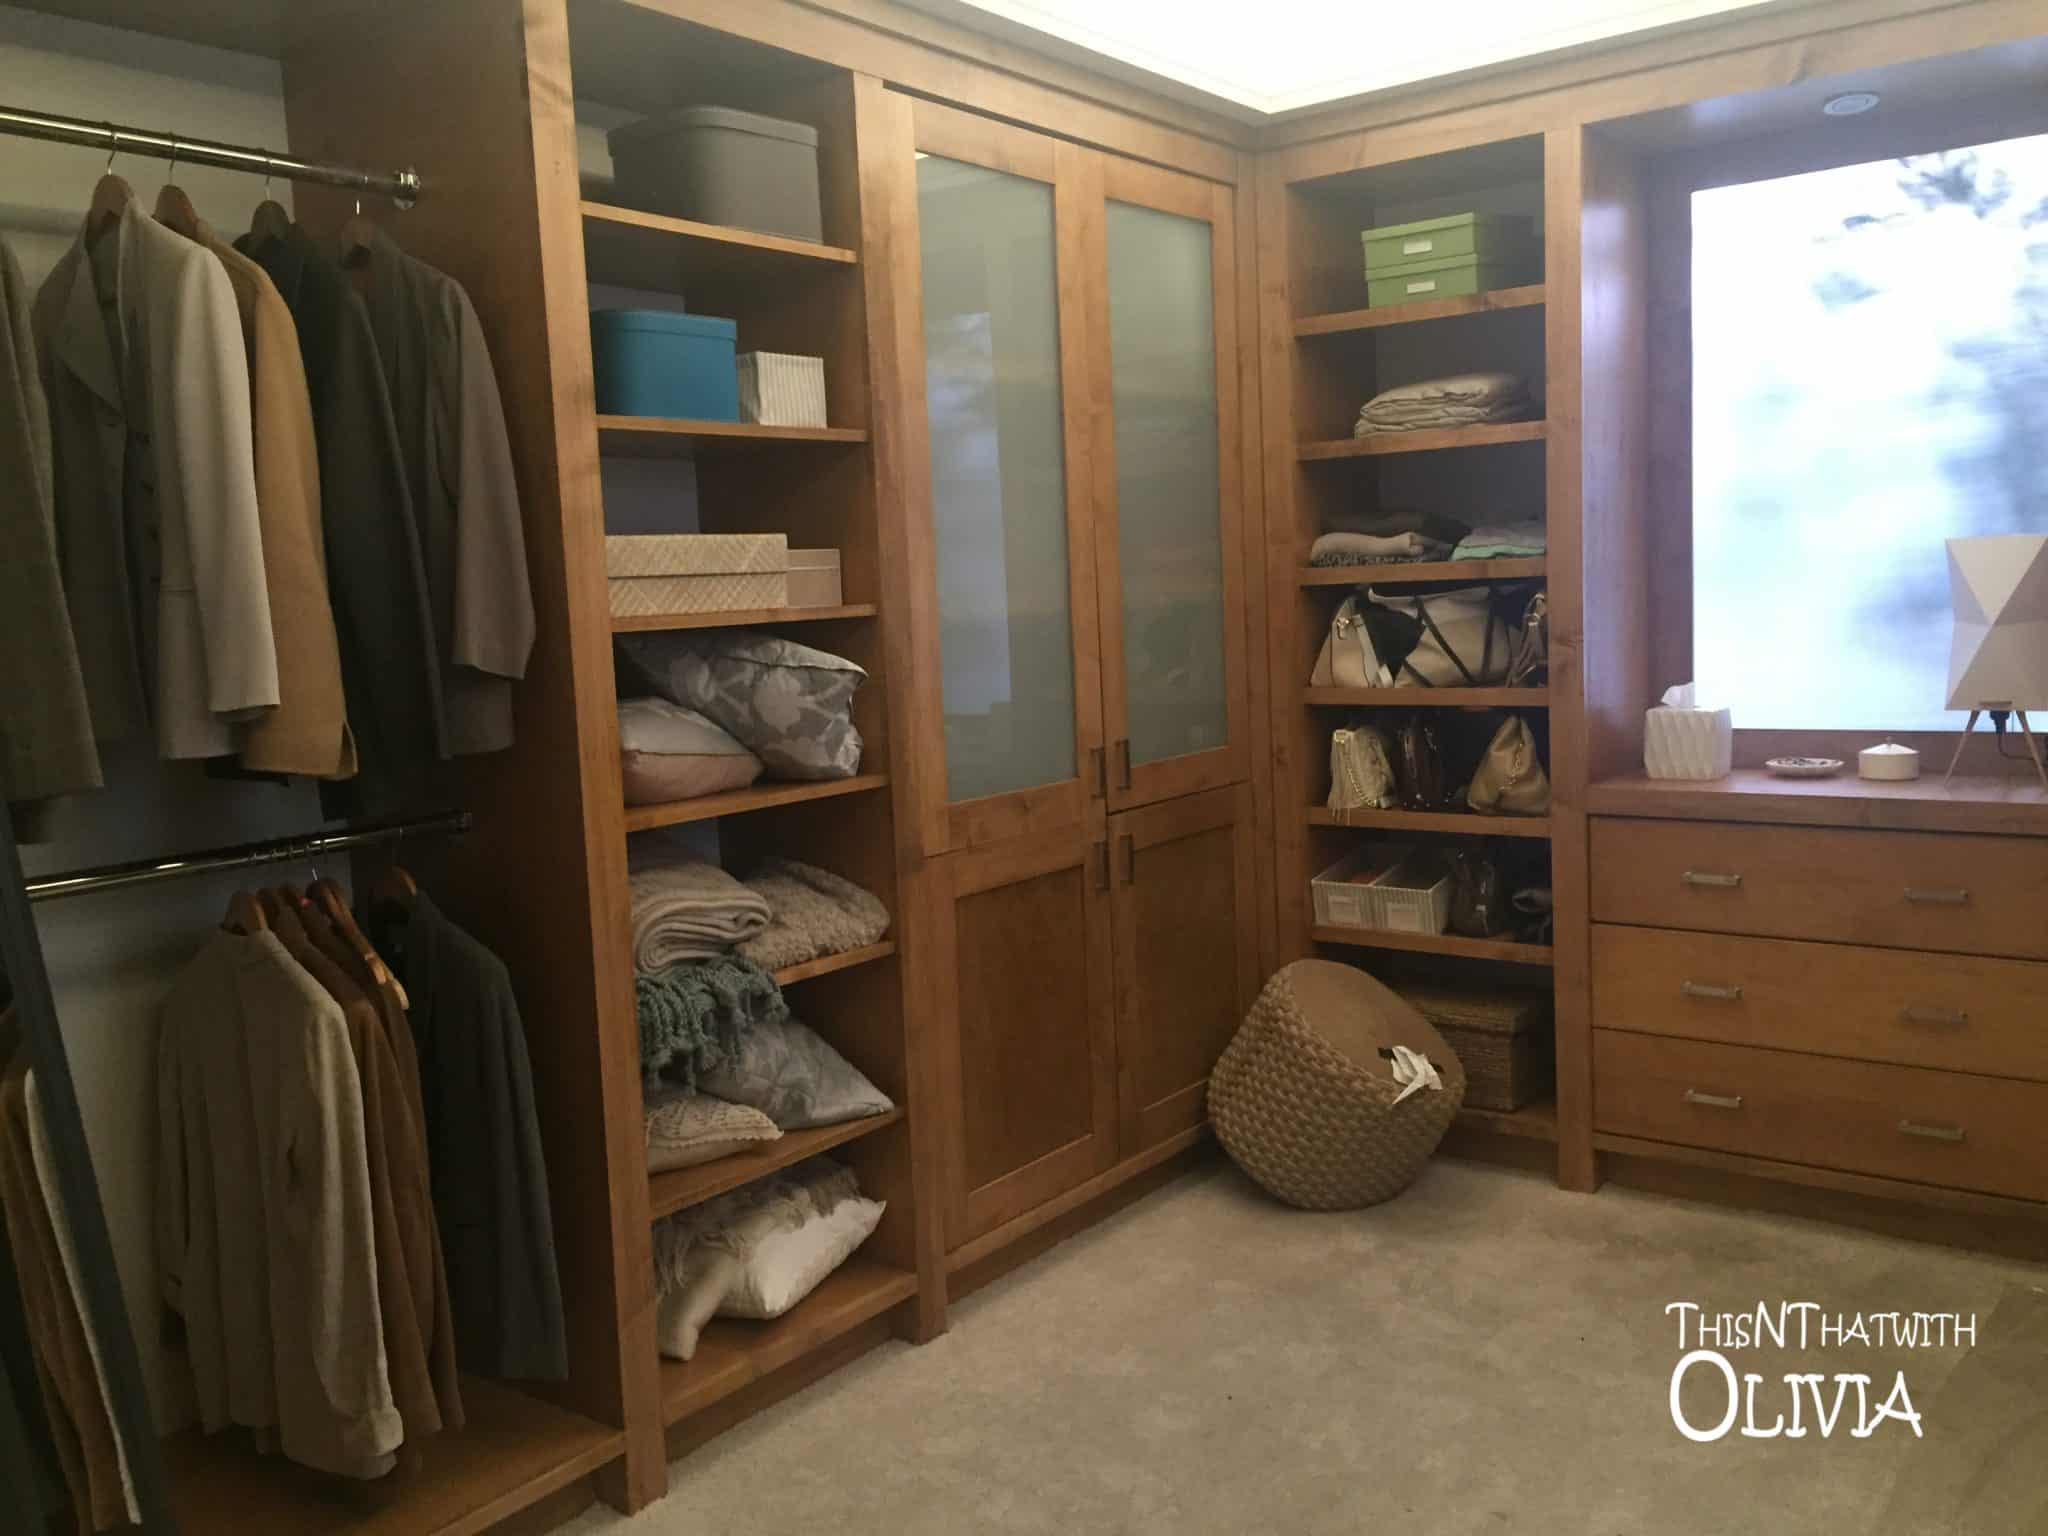 Closet on the set of The Catch